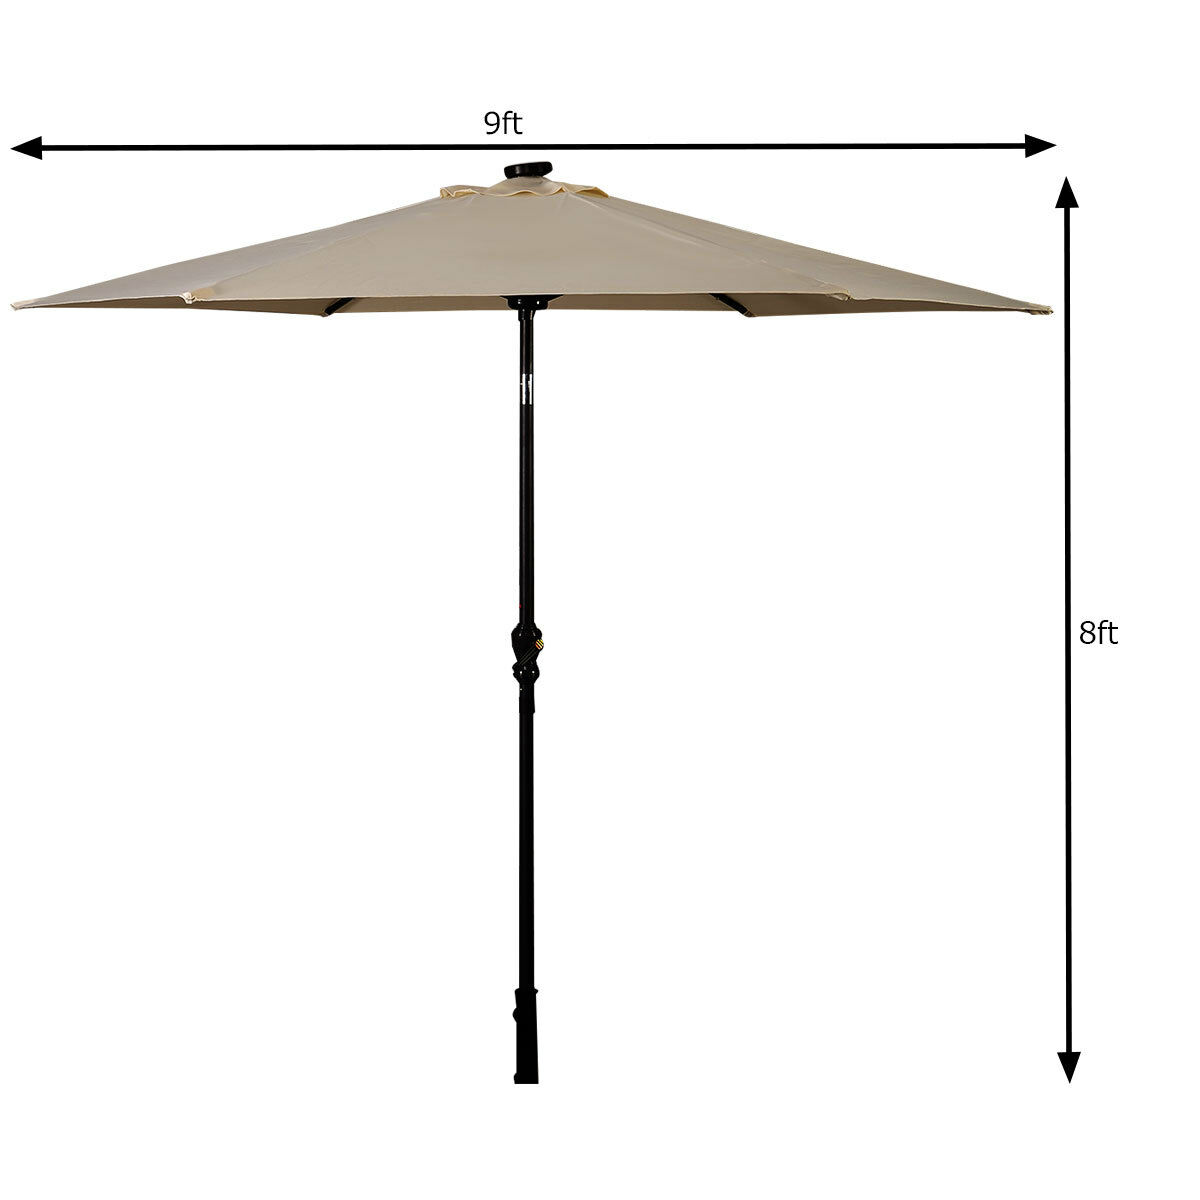 9FT-Patio-Solar-Umbrella-LED-Patio-Market-Steel-Tilt-W-Crank-Outdoor-GOPLUS-New thumbnail 5